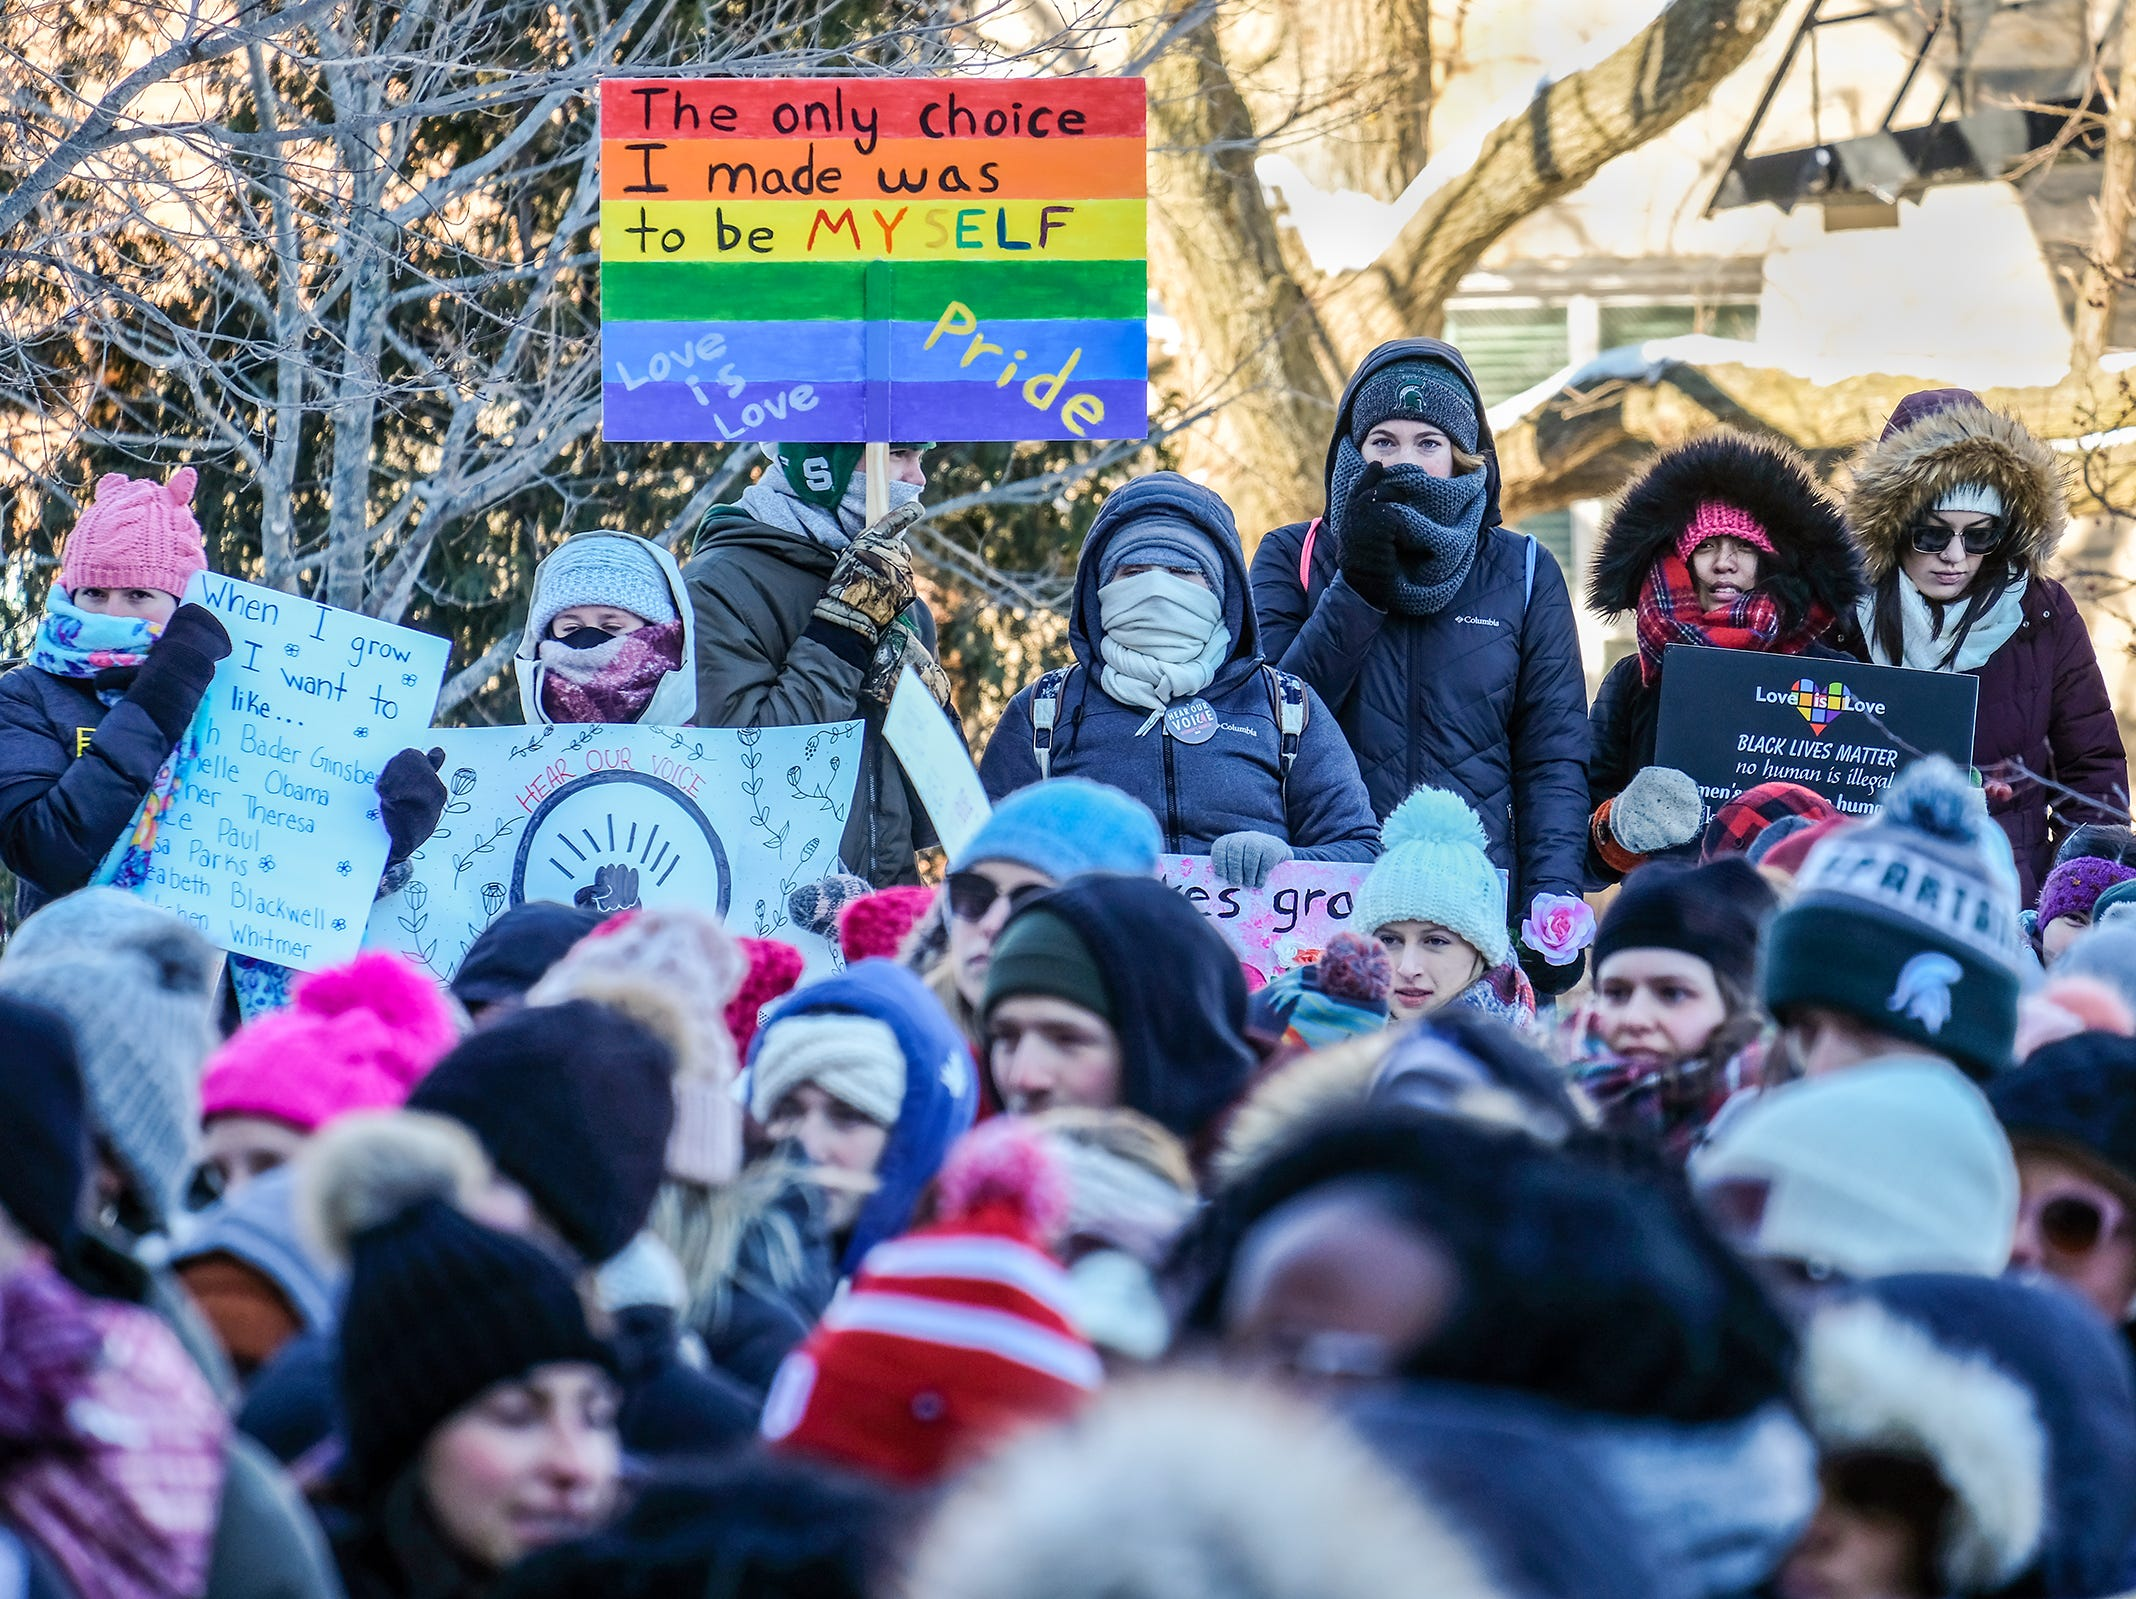 Despite temperatures hovering around 10 degrees and a wind chill well below zero, around 500 people participate in Lansing's Women's March Sunday, Jan. 20, 2019 on the Michigan State Campus.